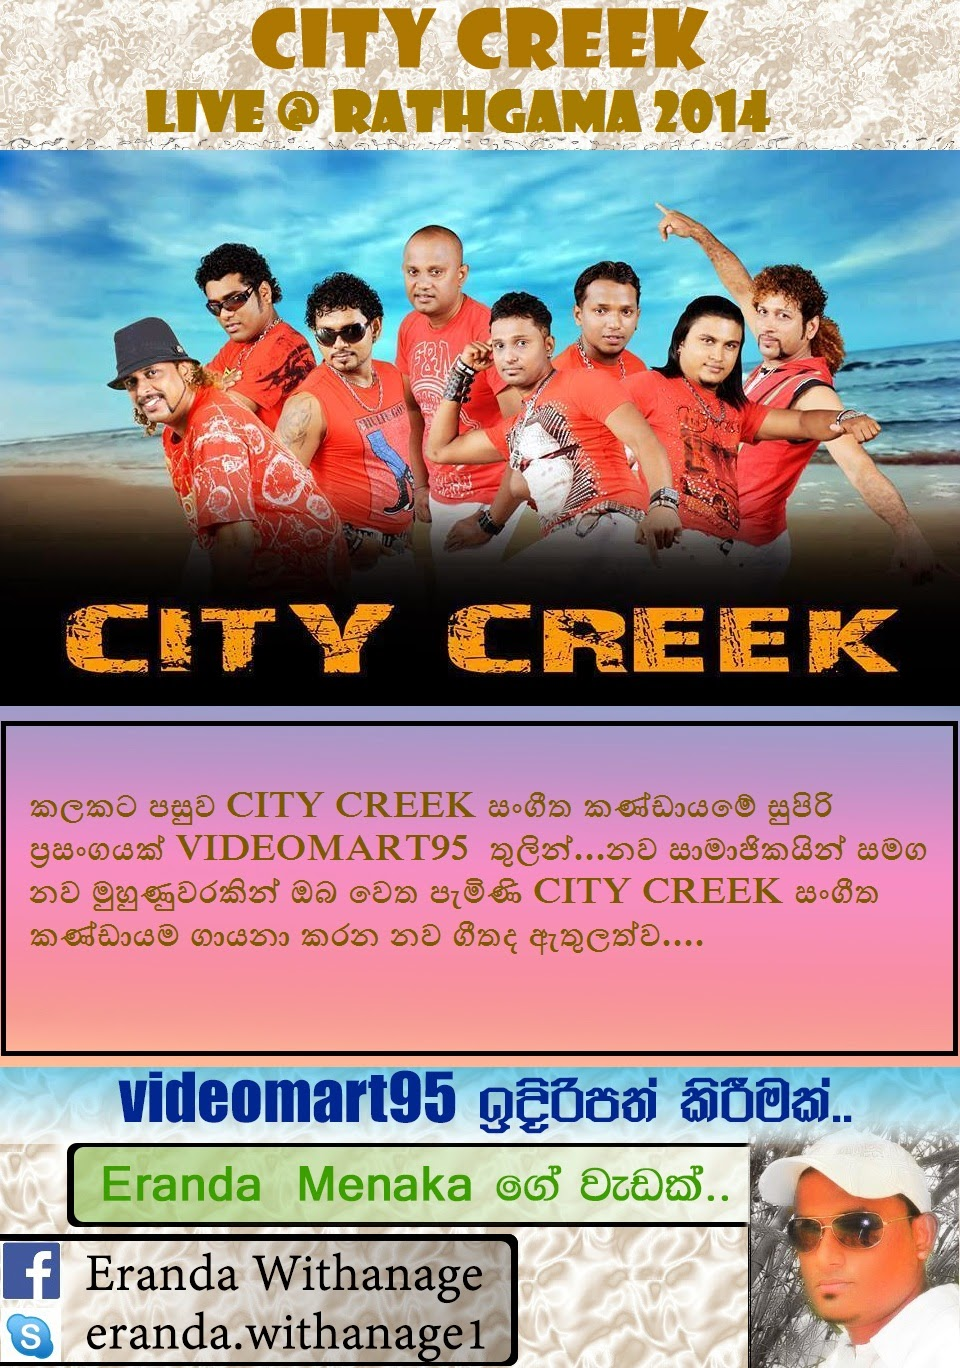 CITY CREEK LIVE @ RATHGAMA 2014